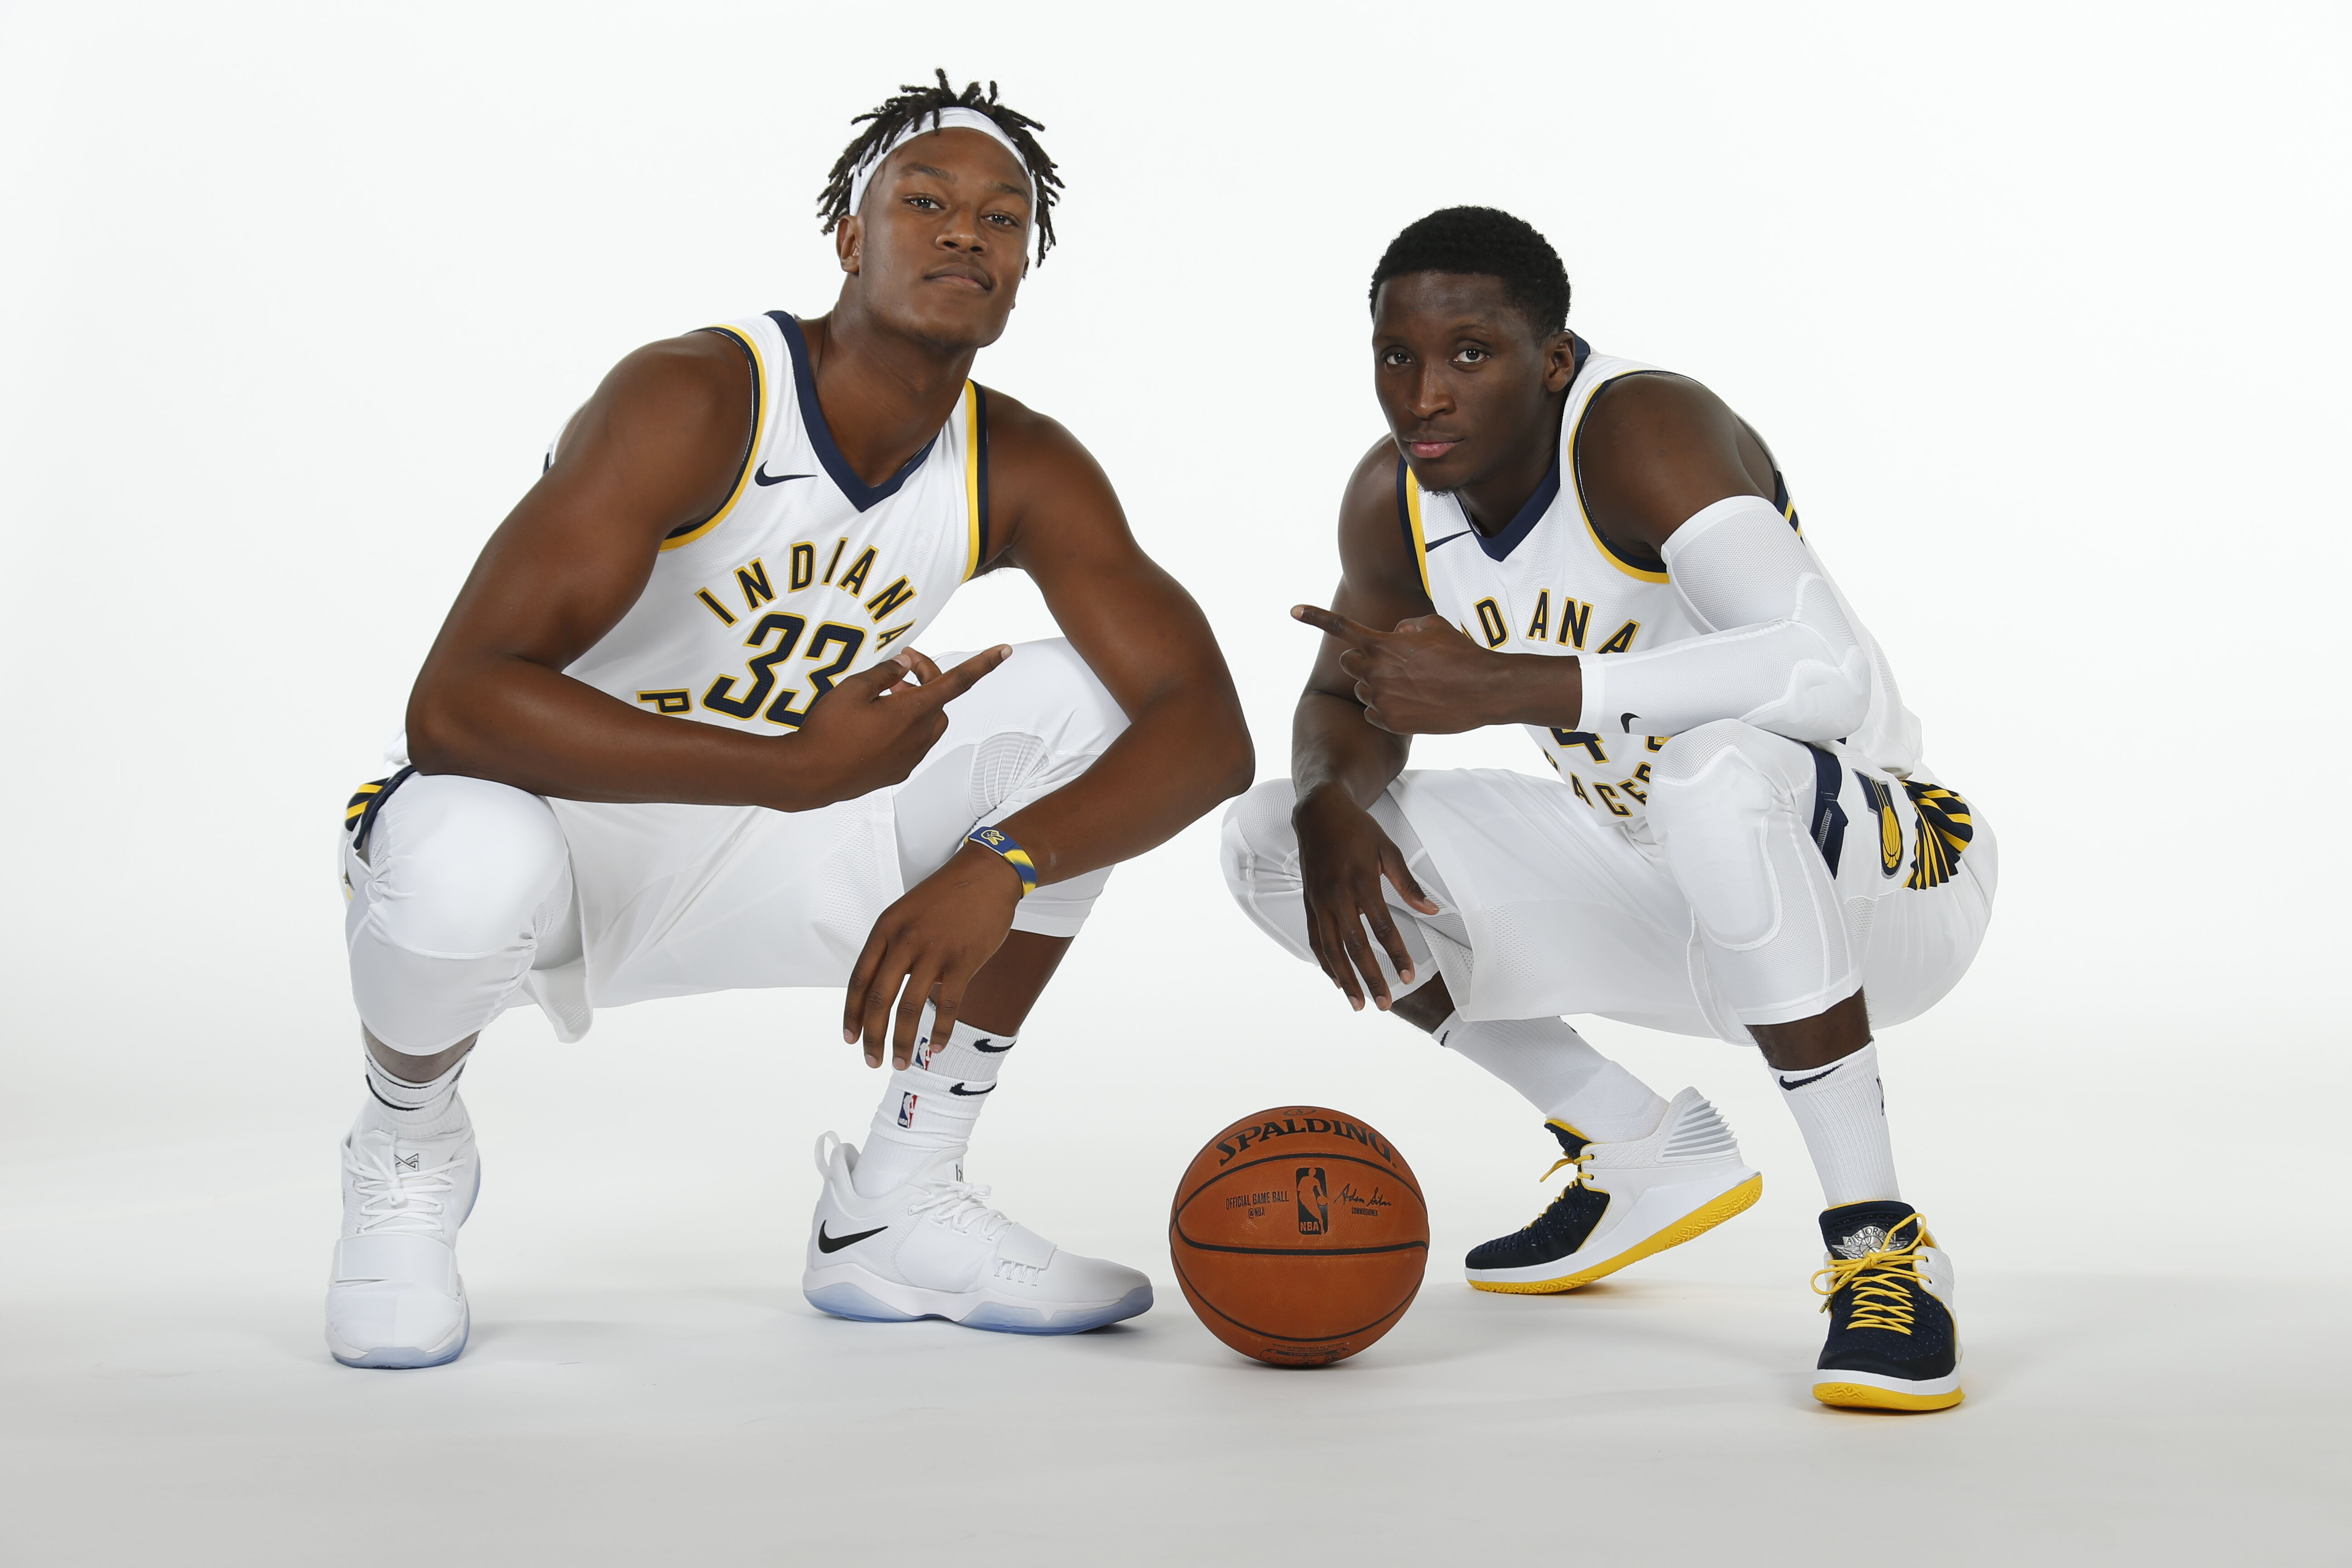 856328802-2017-2018-indiana-pacers-media-day.jpg